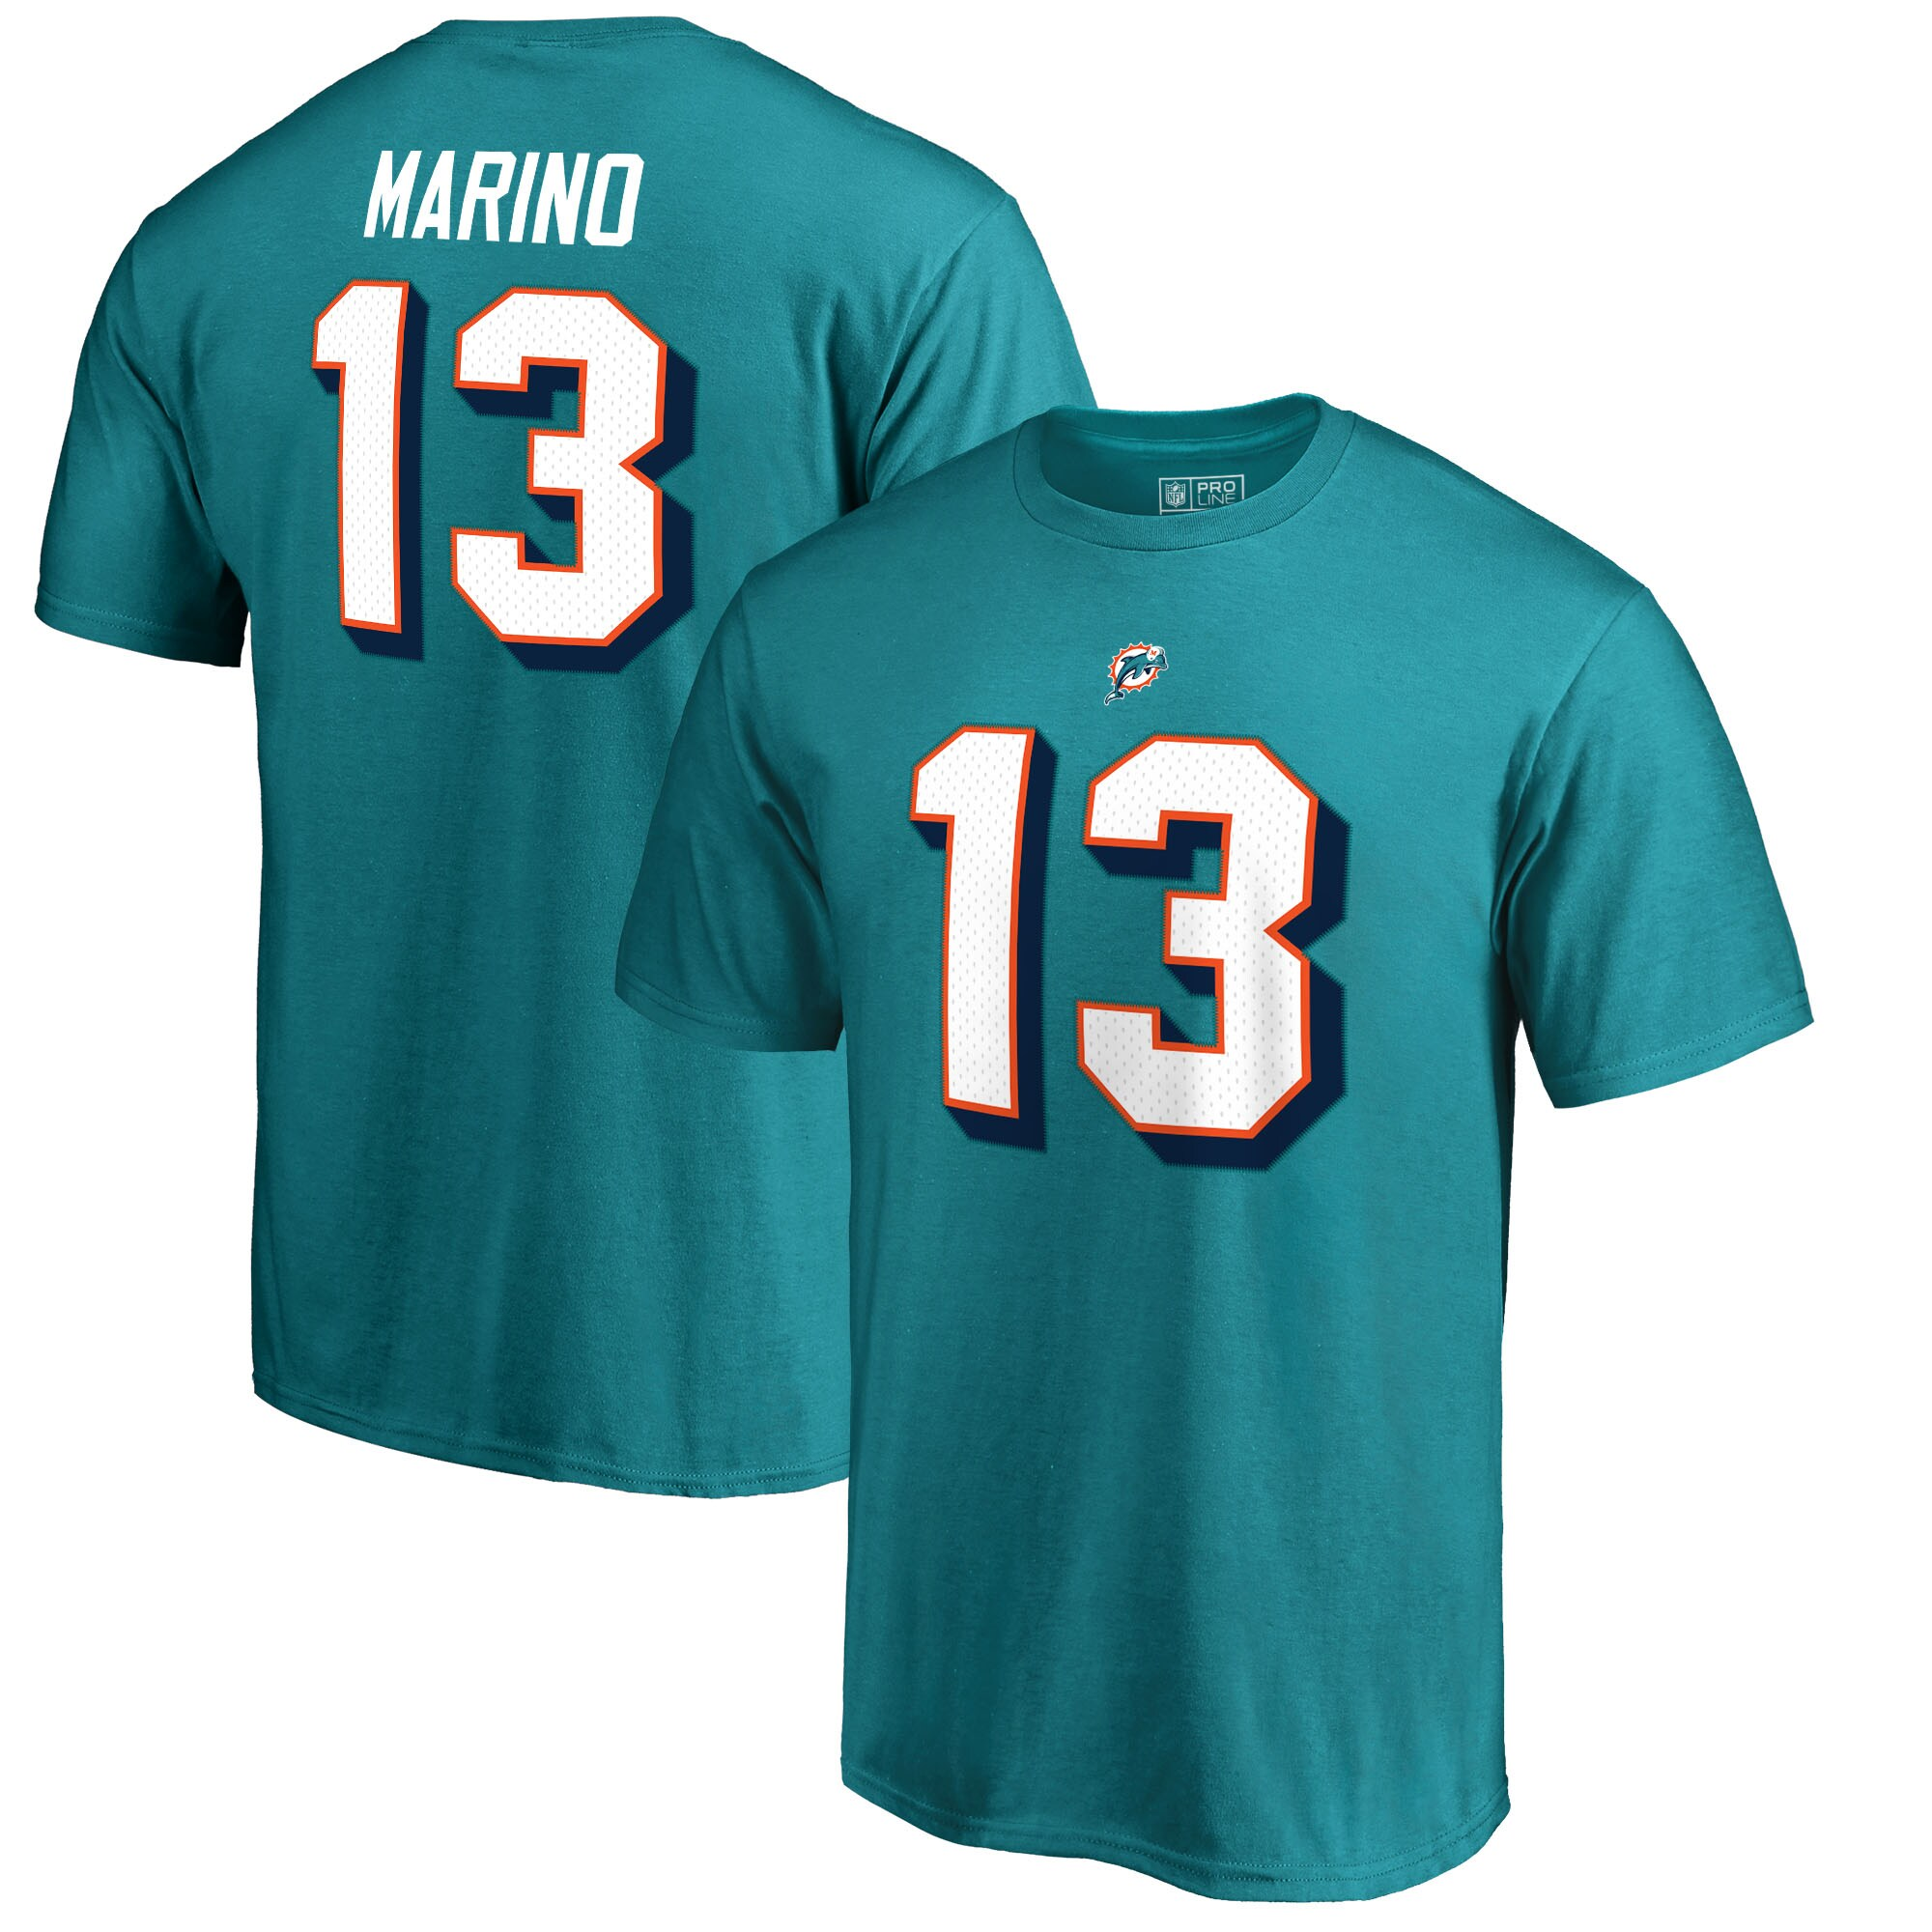 Dan Marino Miami Dolphins NFL Pro Line by Fanatics Branded Retired Player Authentic Stack Name & Number T-Shirt - Aqua